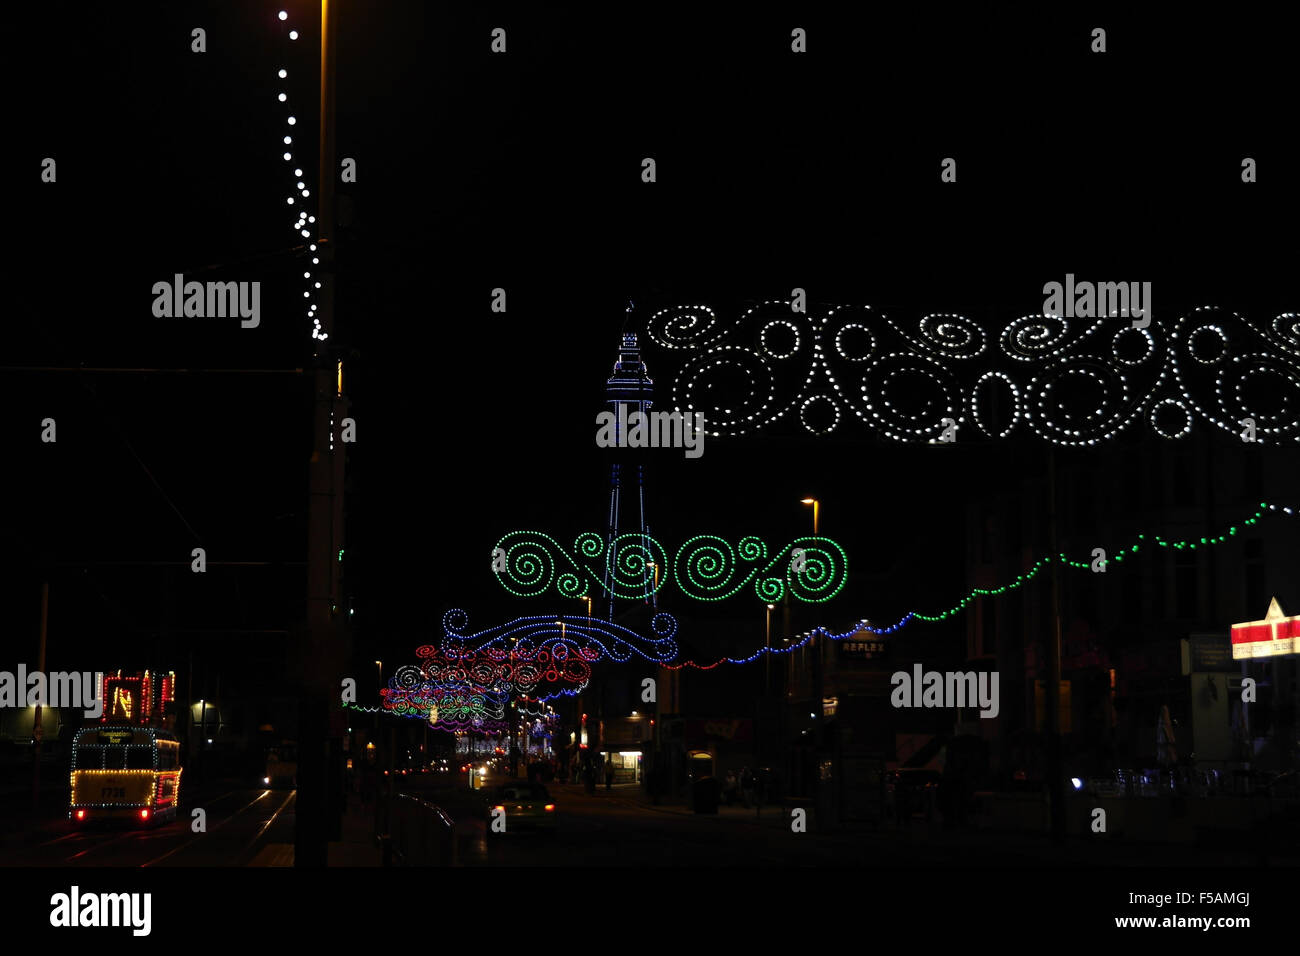 Night view, north to Tower, colourful Scrolls across Central Promenade by tramway with Frigate Tram, Blackpool Illuminations, Stock Photo